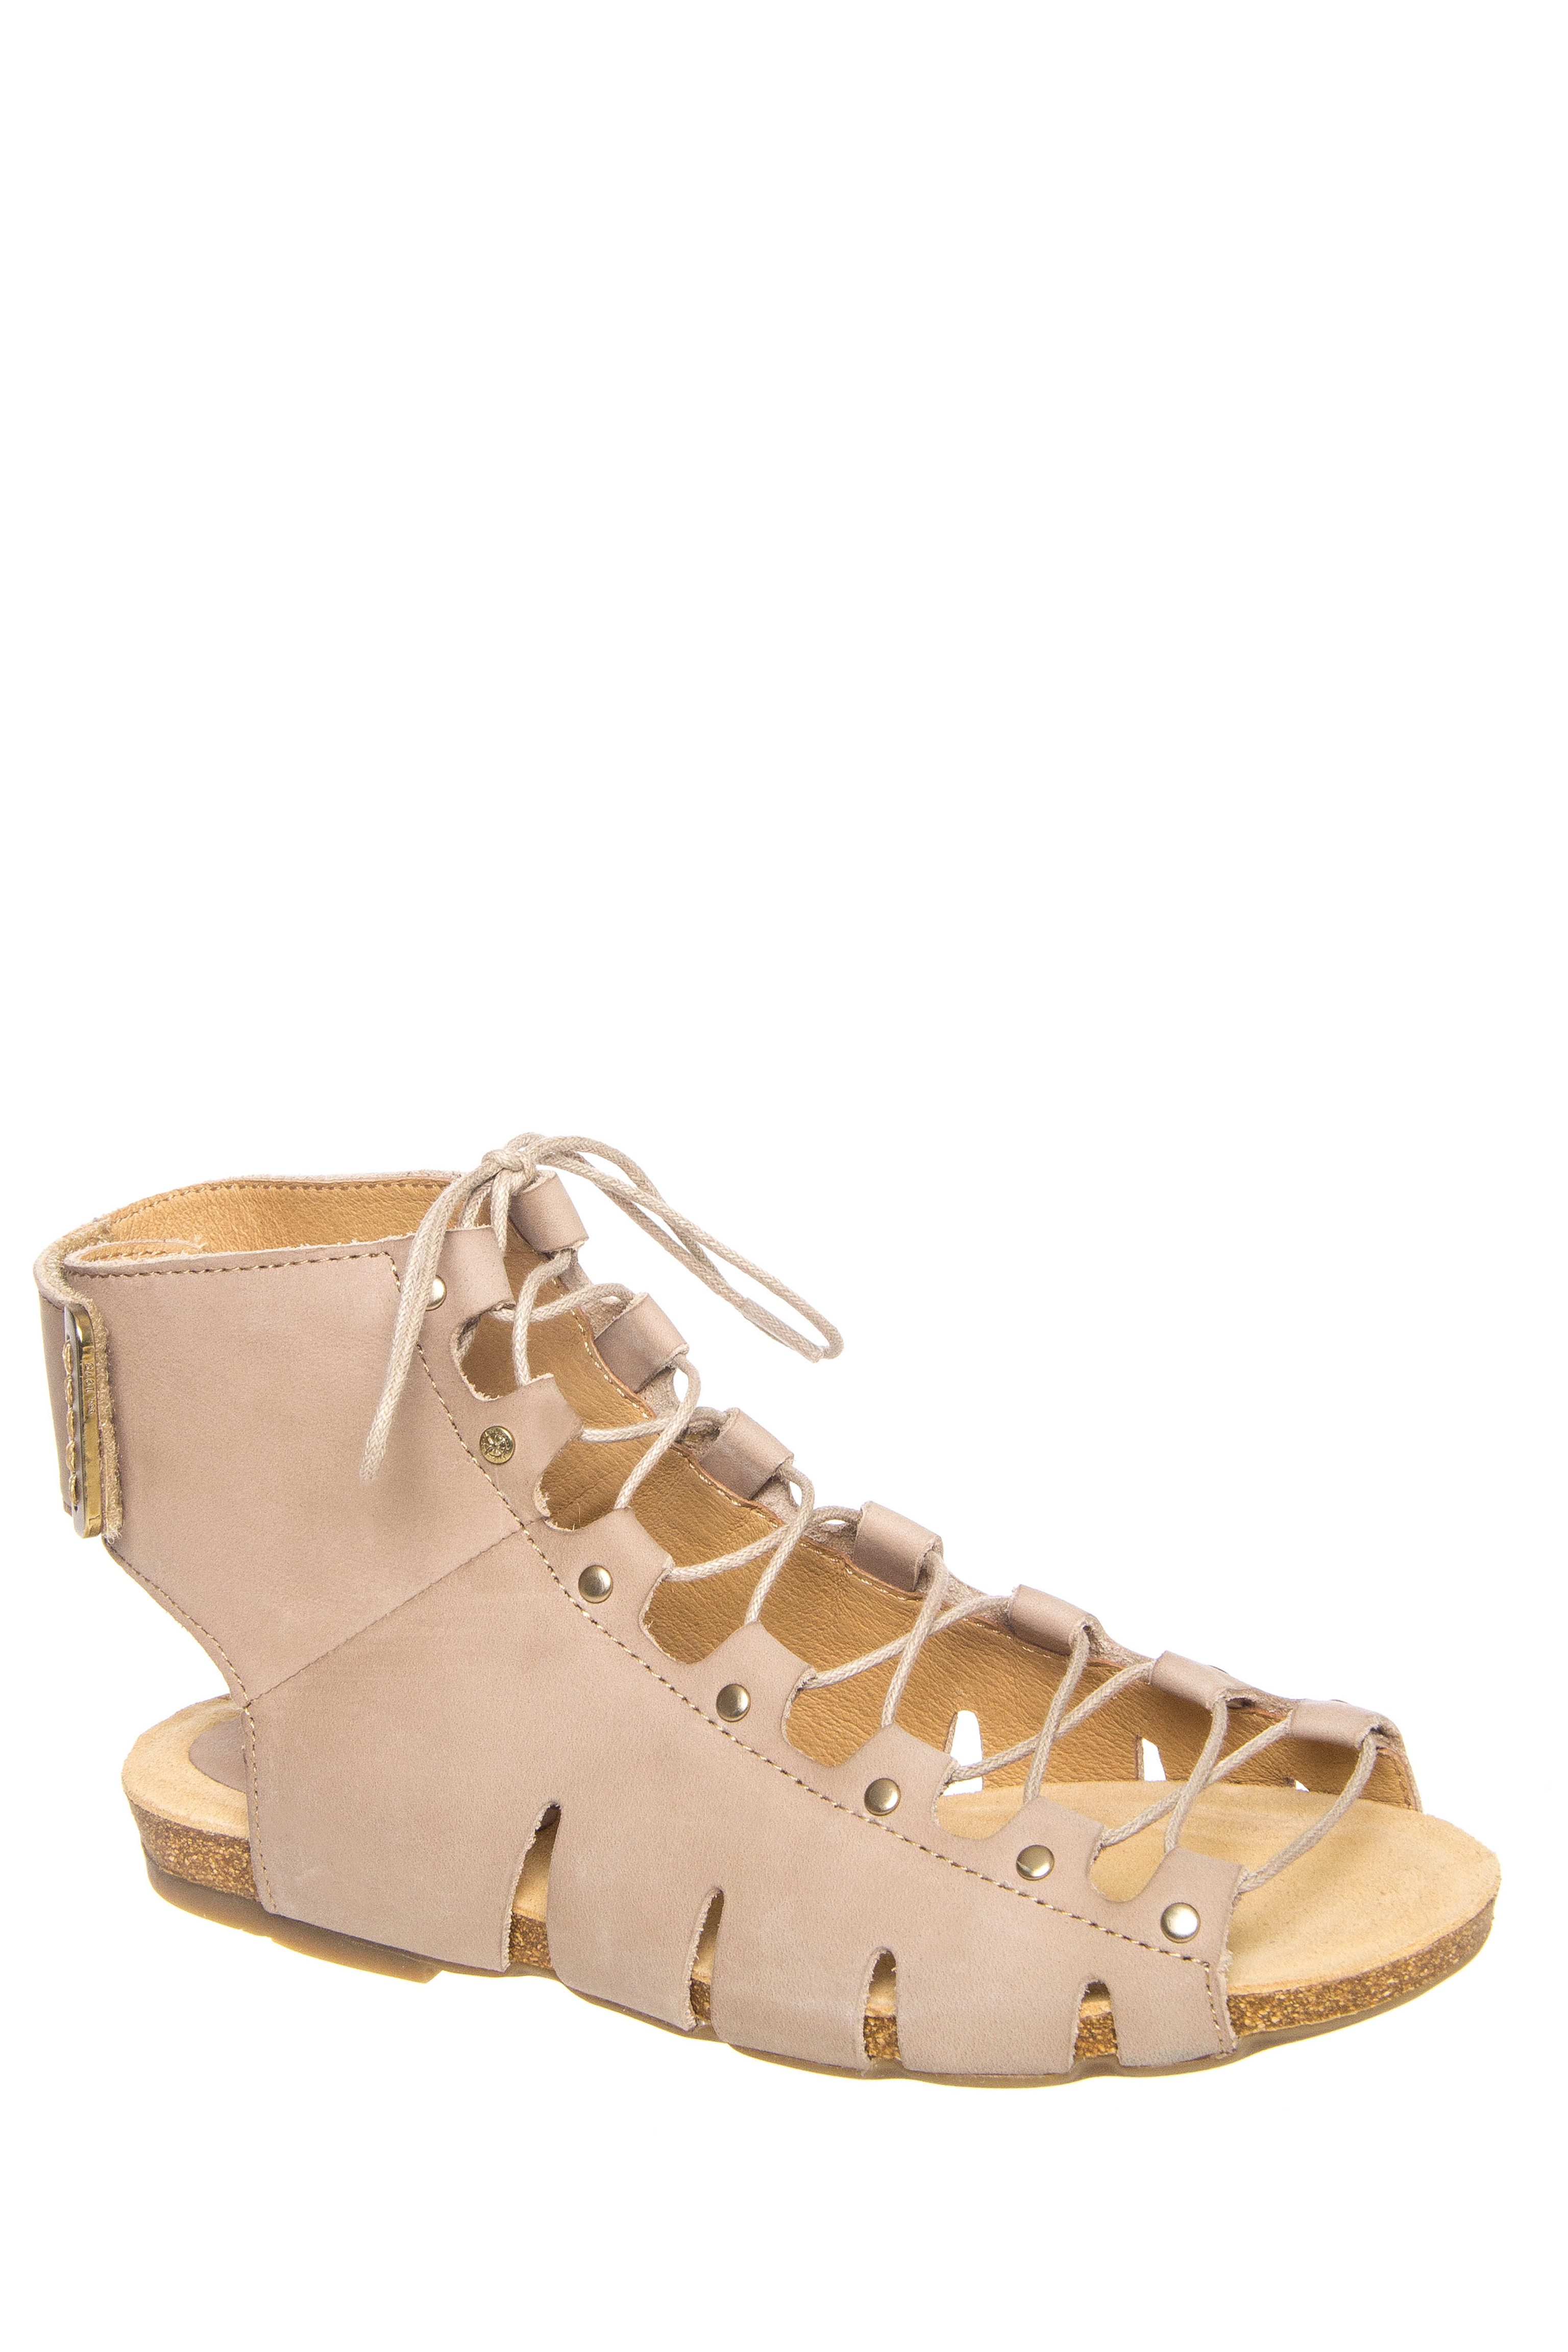 Bussola Maynila Gladiator Sandals - Doeskin